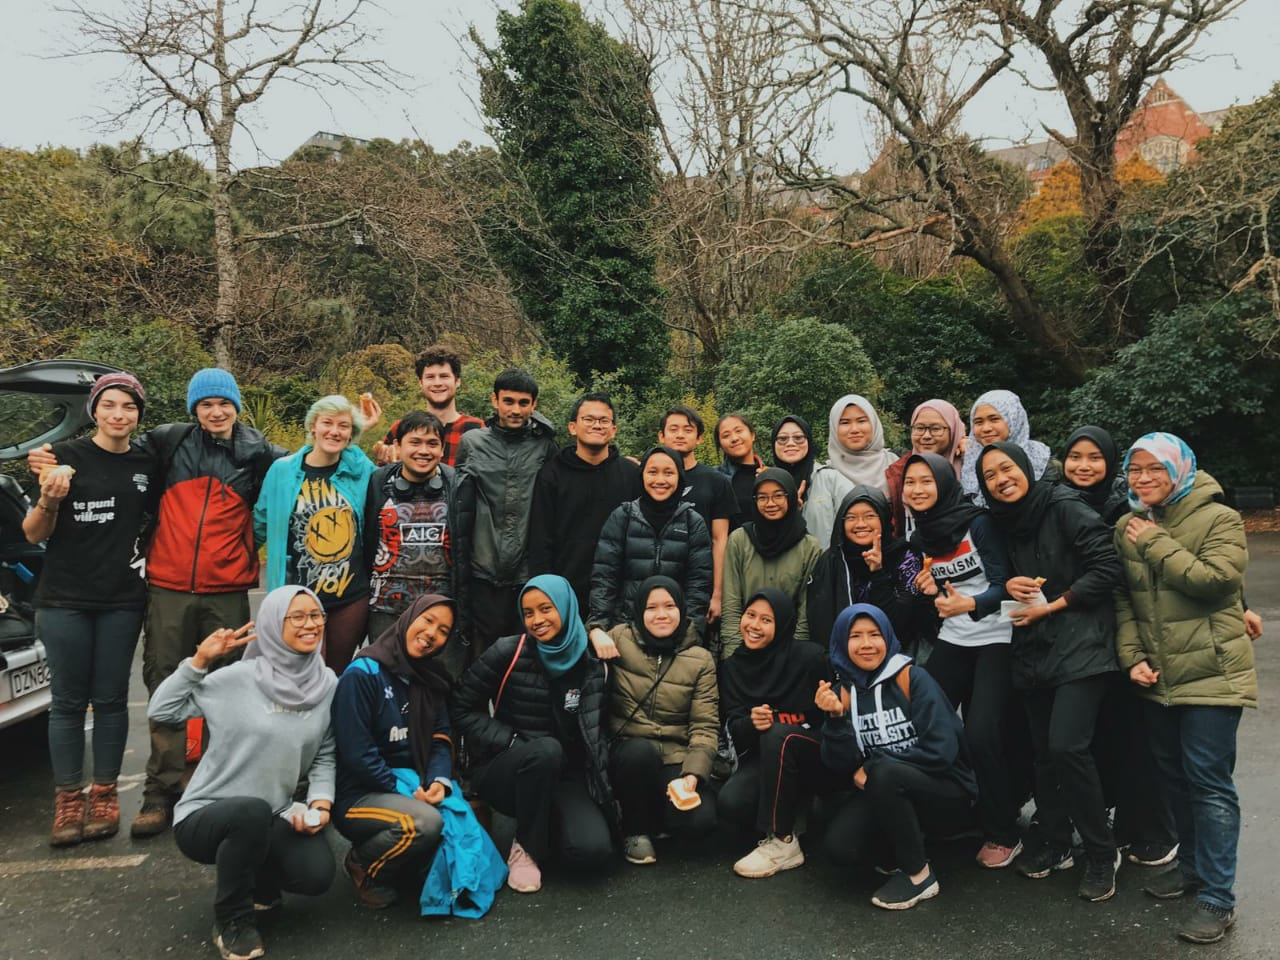 Kumutoto volunteering activity with International students in New Zealand. Source: Personal documentation